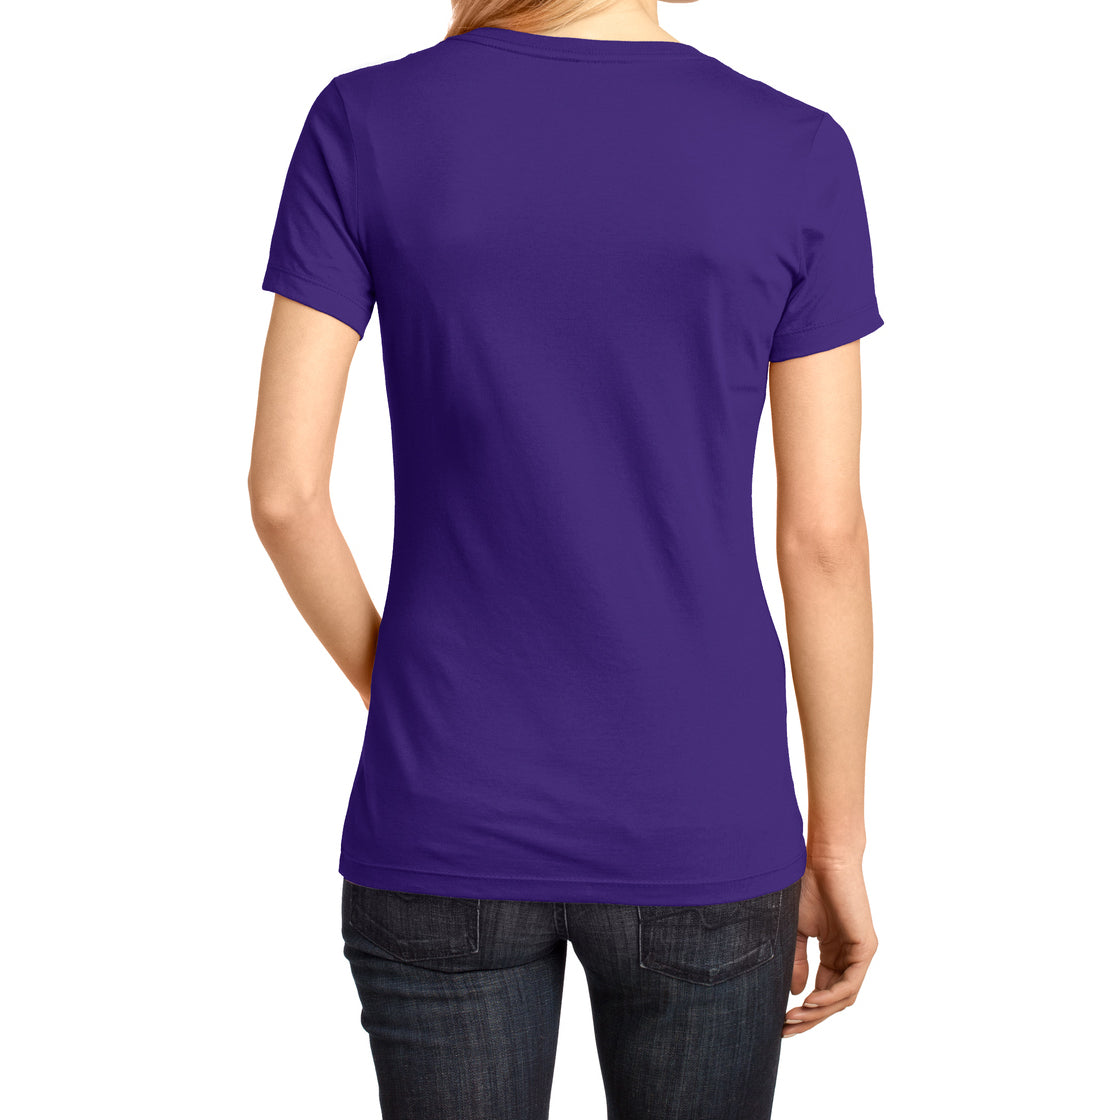 Ladies Perfect Weight V-Neck Tee - Purple - Back